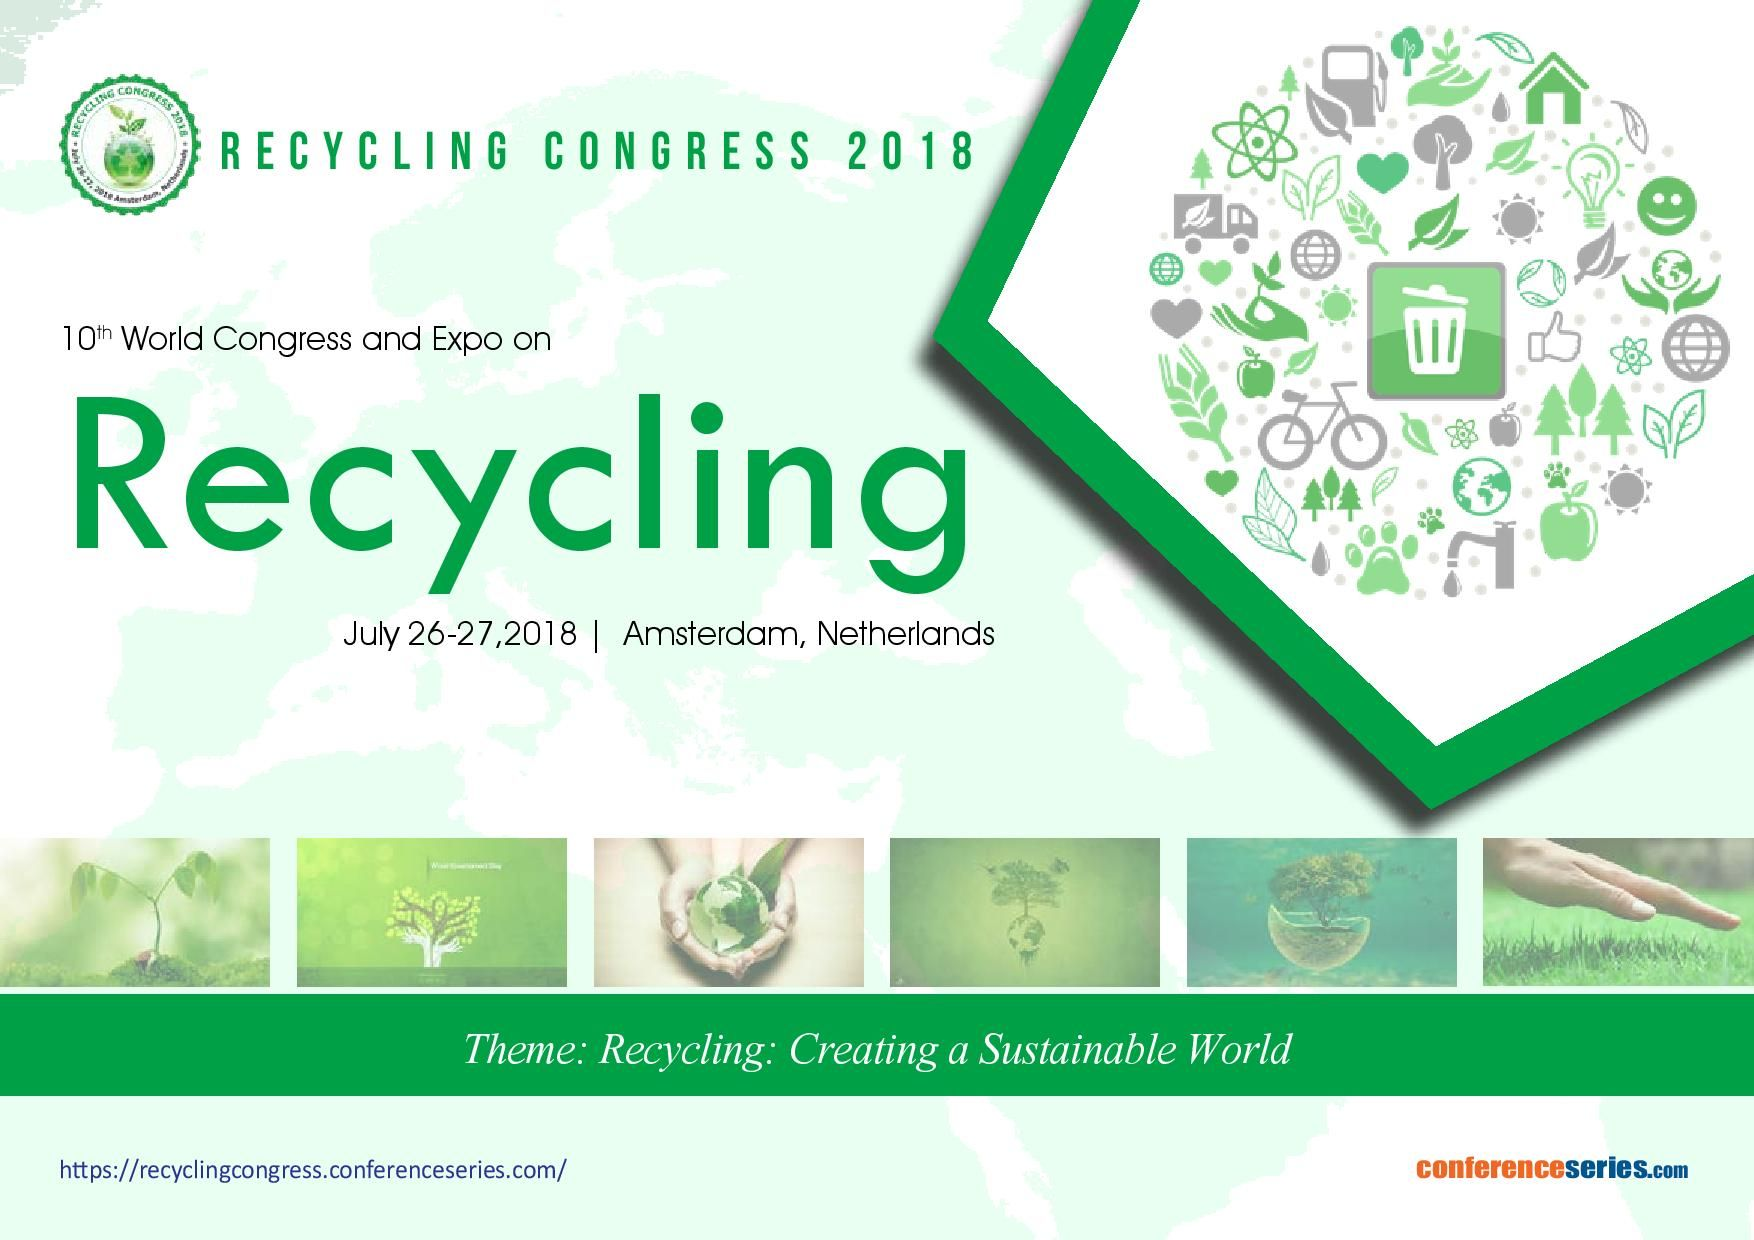 10th World Congress and Expo on #Recycling July 26-27, 2018